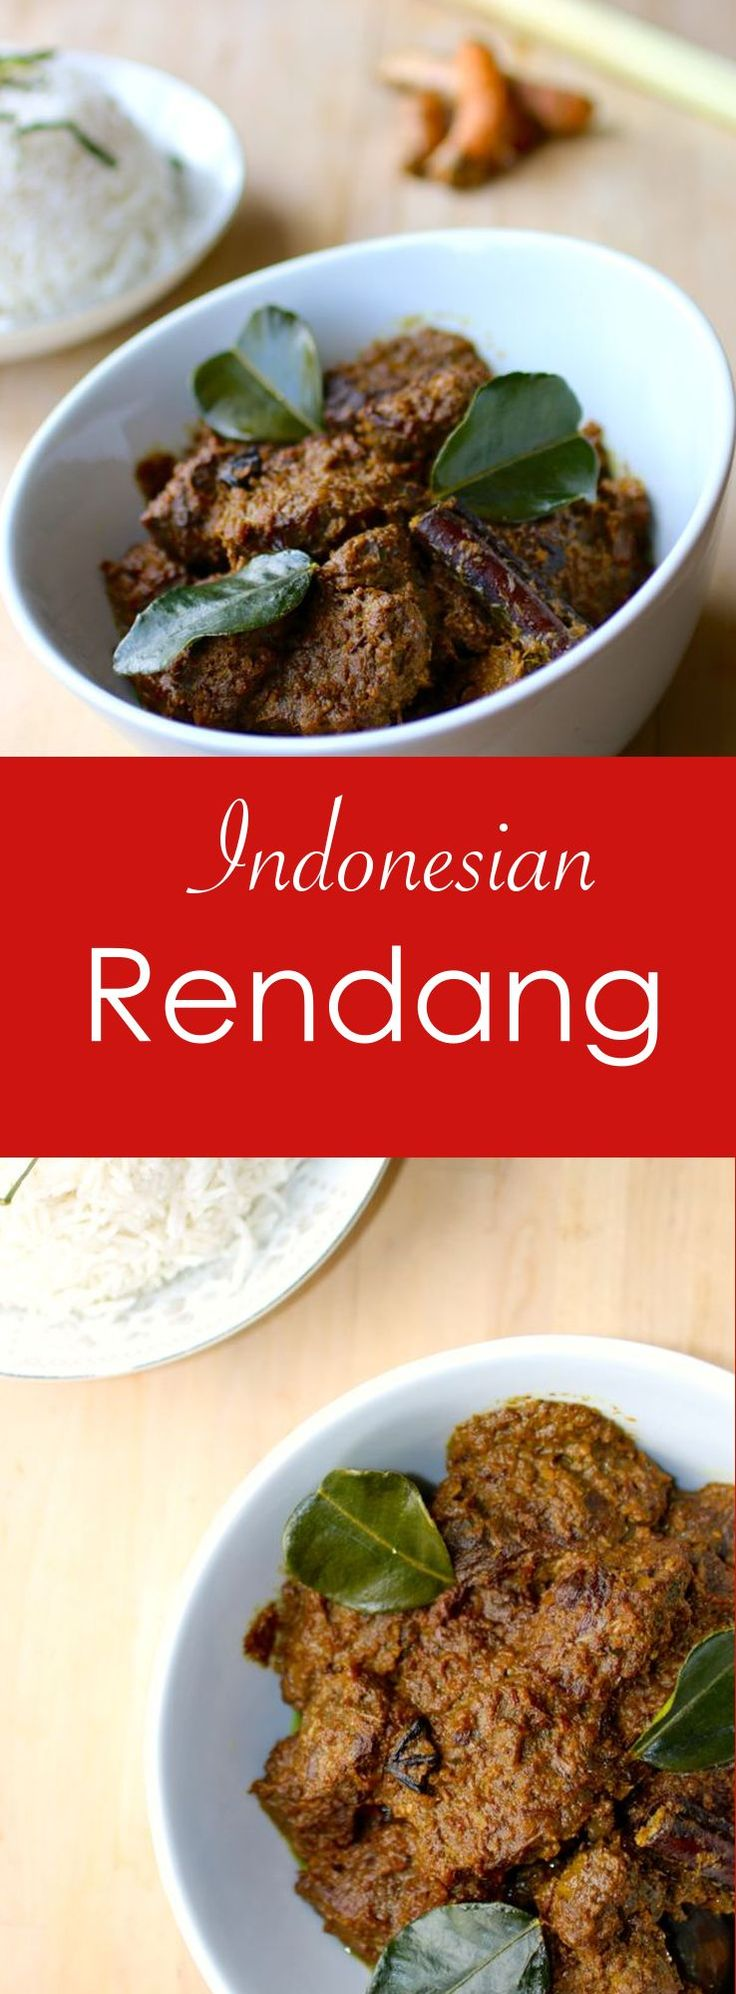 Rendang is a delicious Indonesian beef curry, simmered for a long time, which allows the meat to soak up all the flavors that make up this unique dish. #196flavors